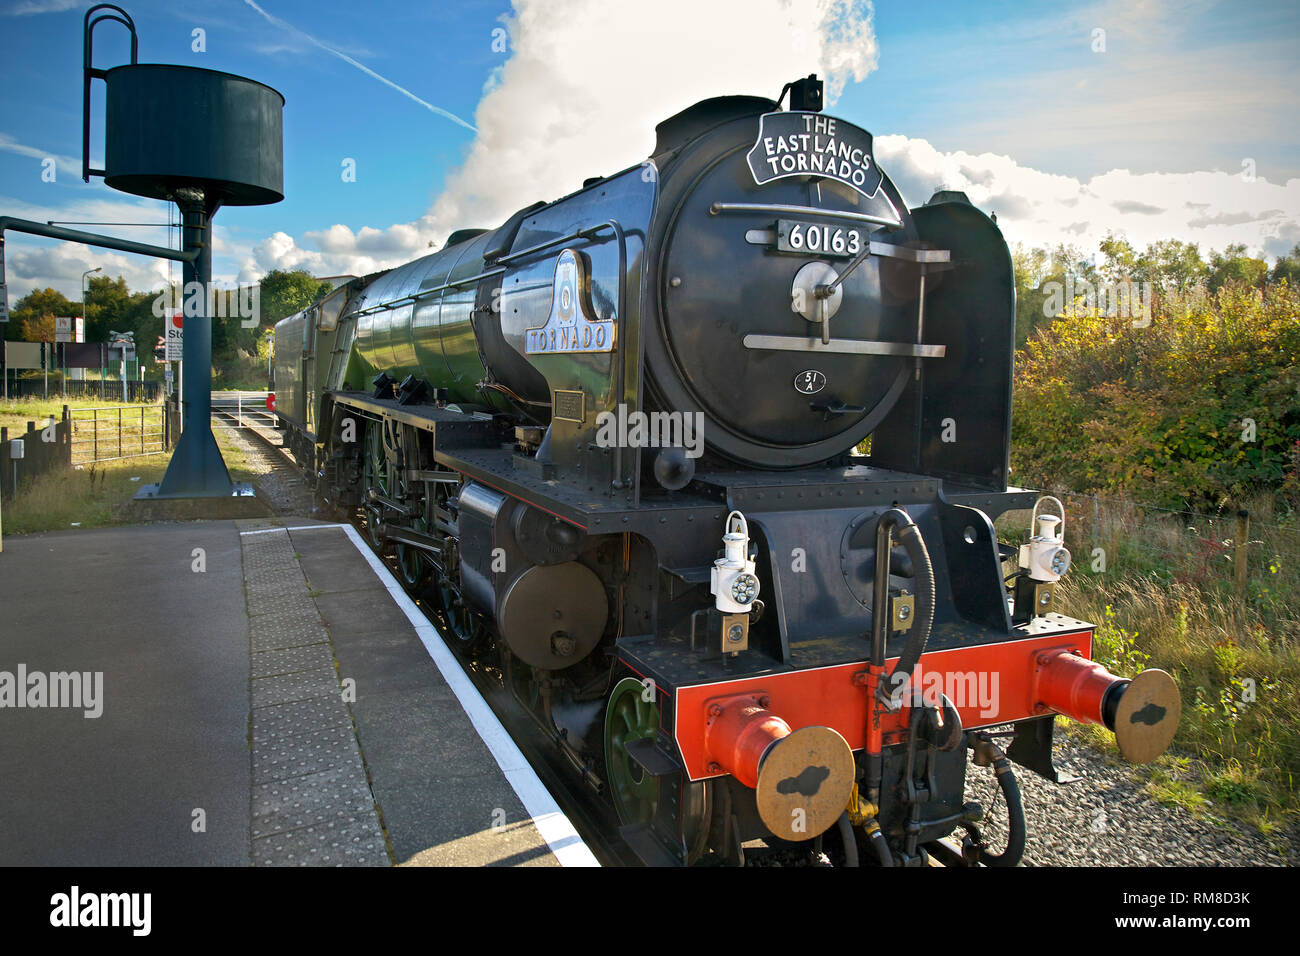 THe steam engine Tornado at Heywood station on the East Lancashire Railway. ELR - Stock Image